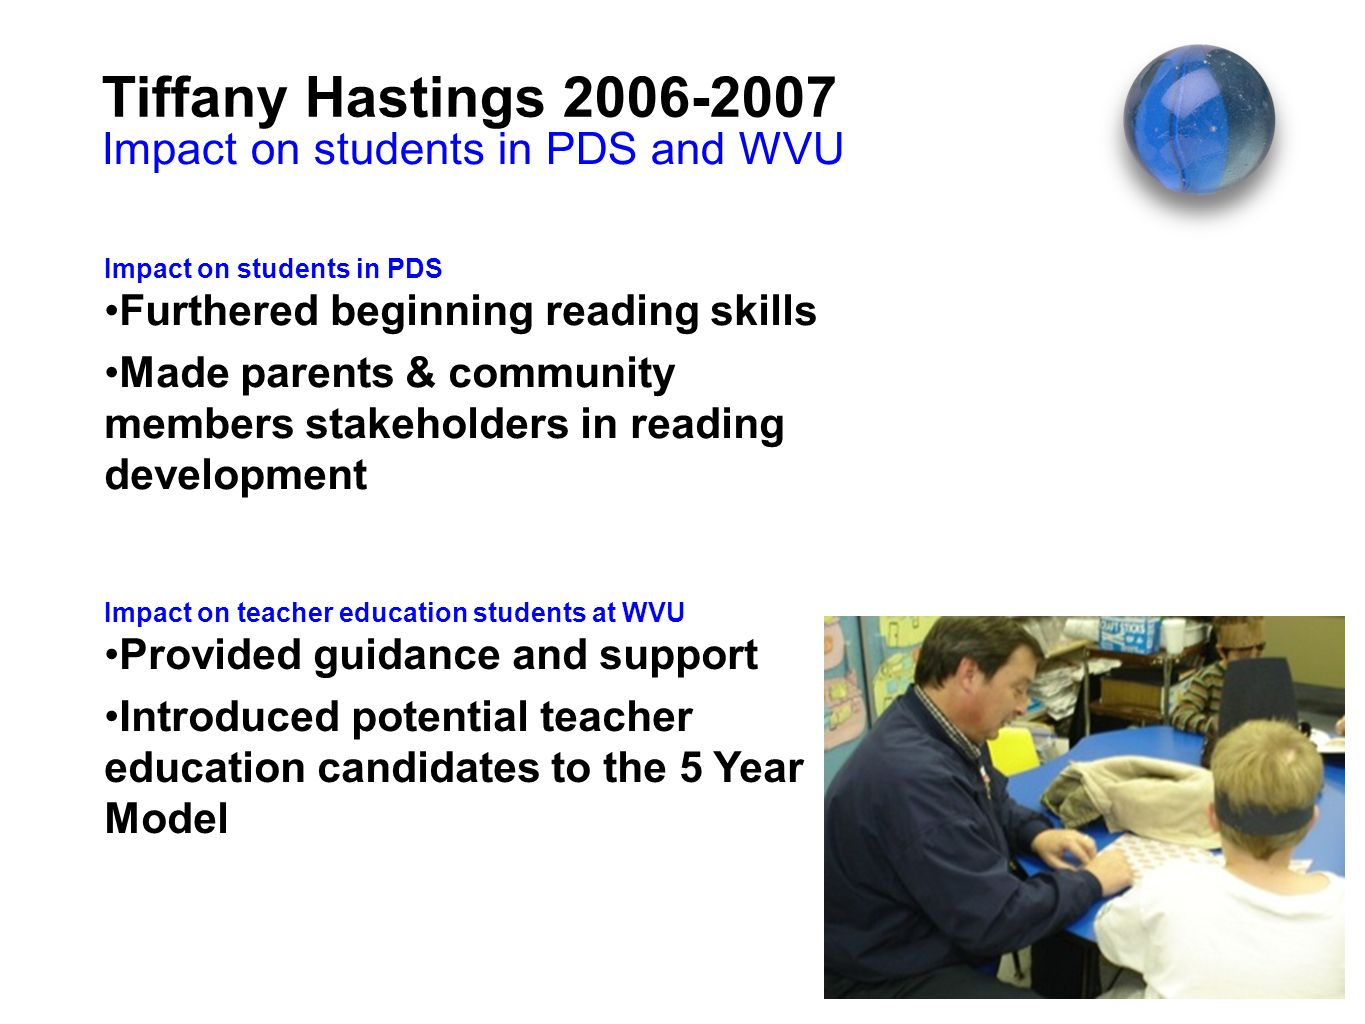 Tiffany Hastings 2006-2007 Impact on students in PDS and WVU